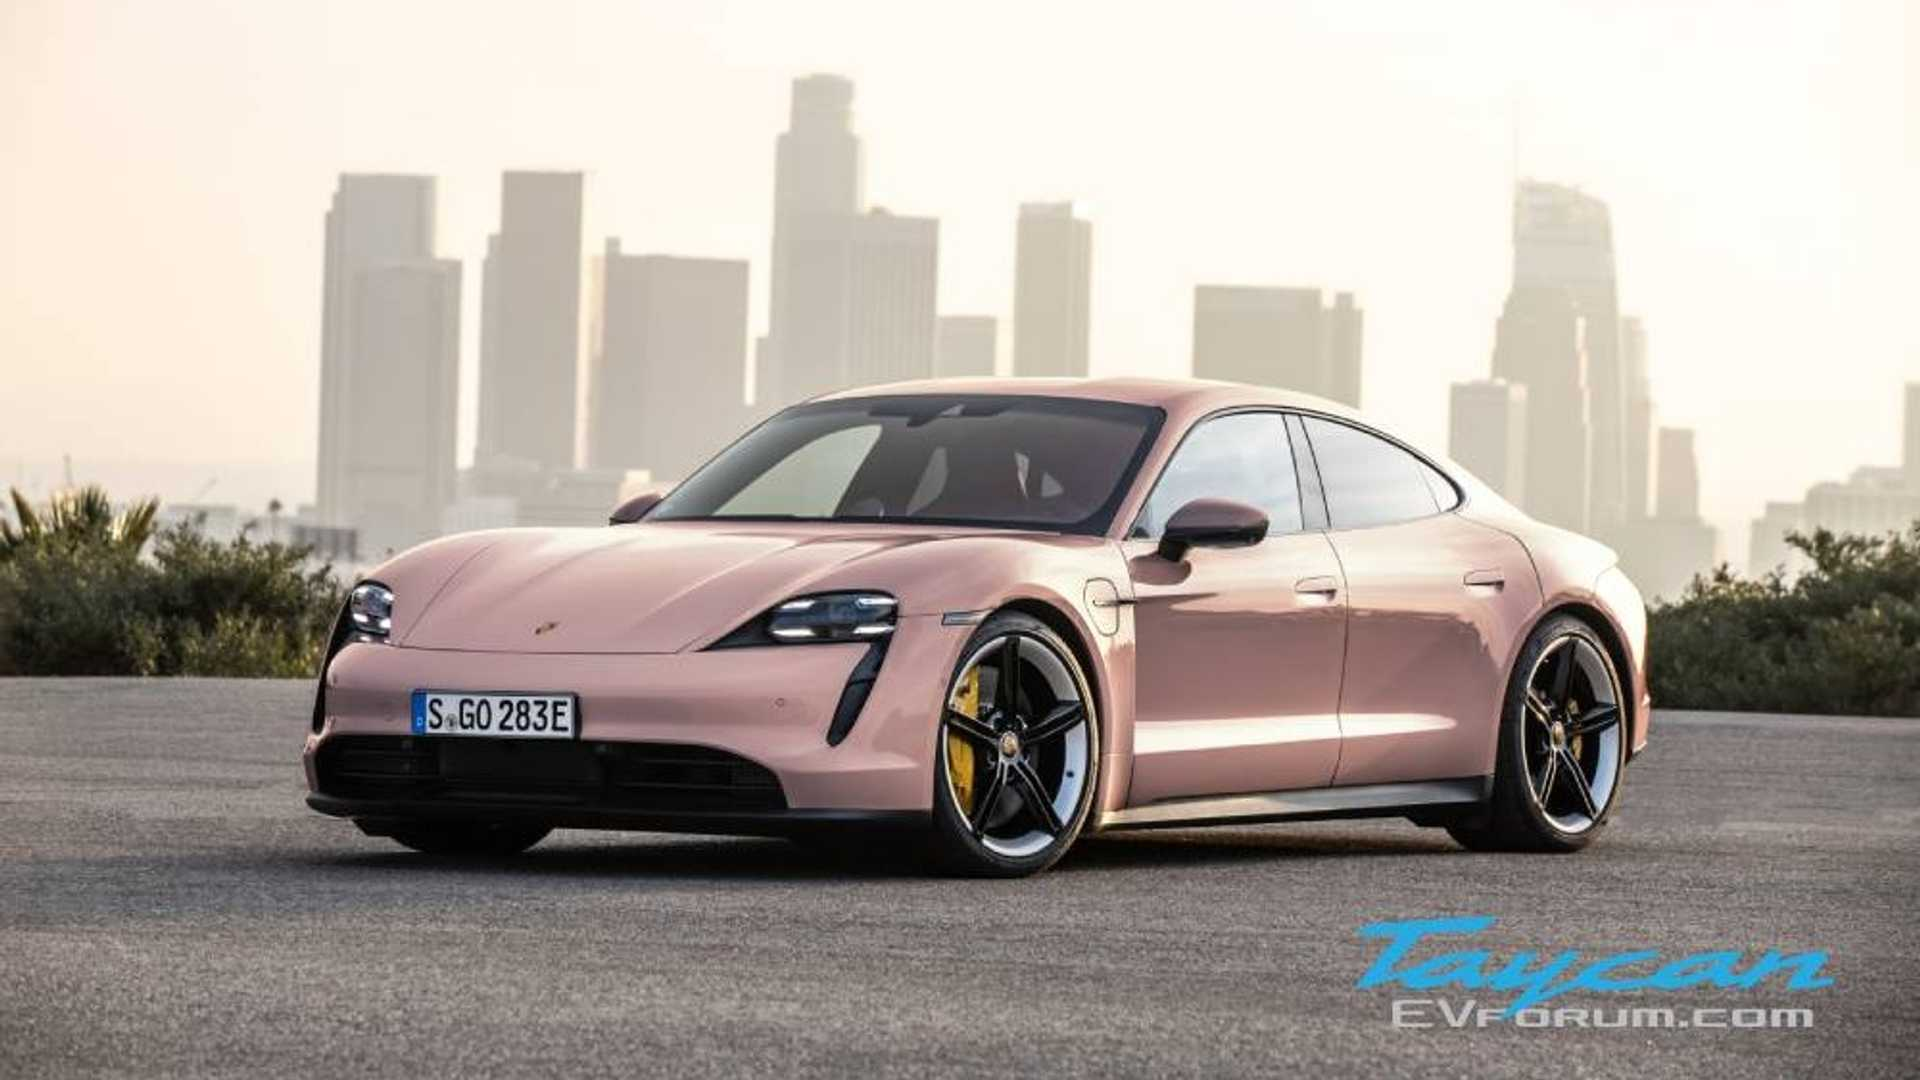 New Porsche Taycan Paint Colors Are Wild And Exciting